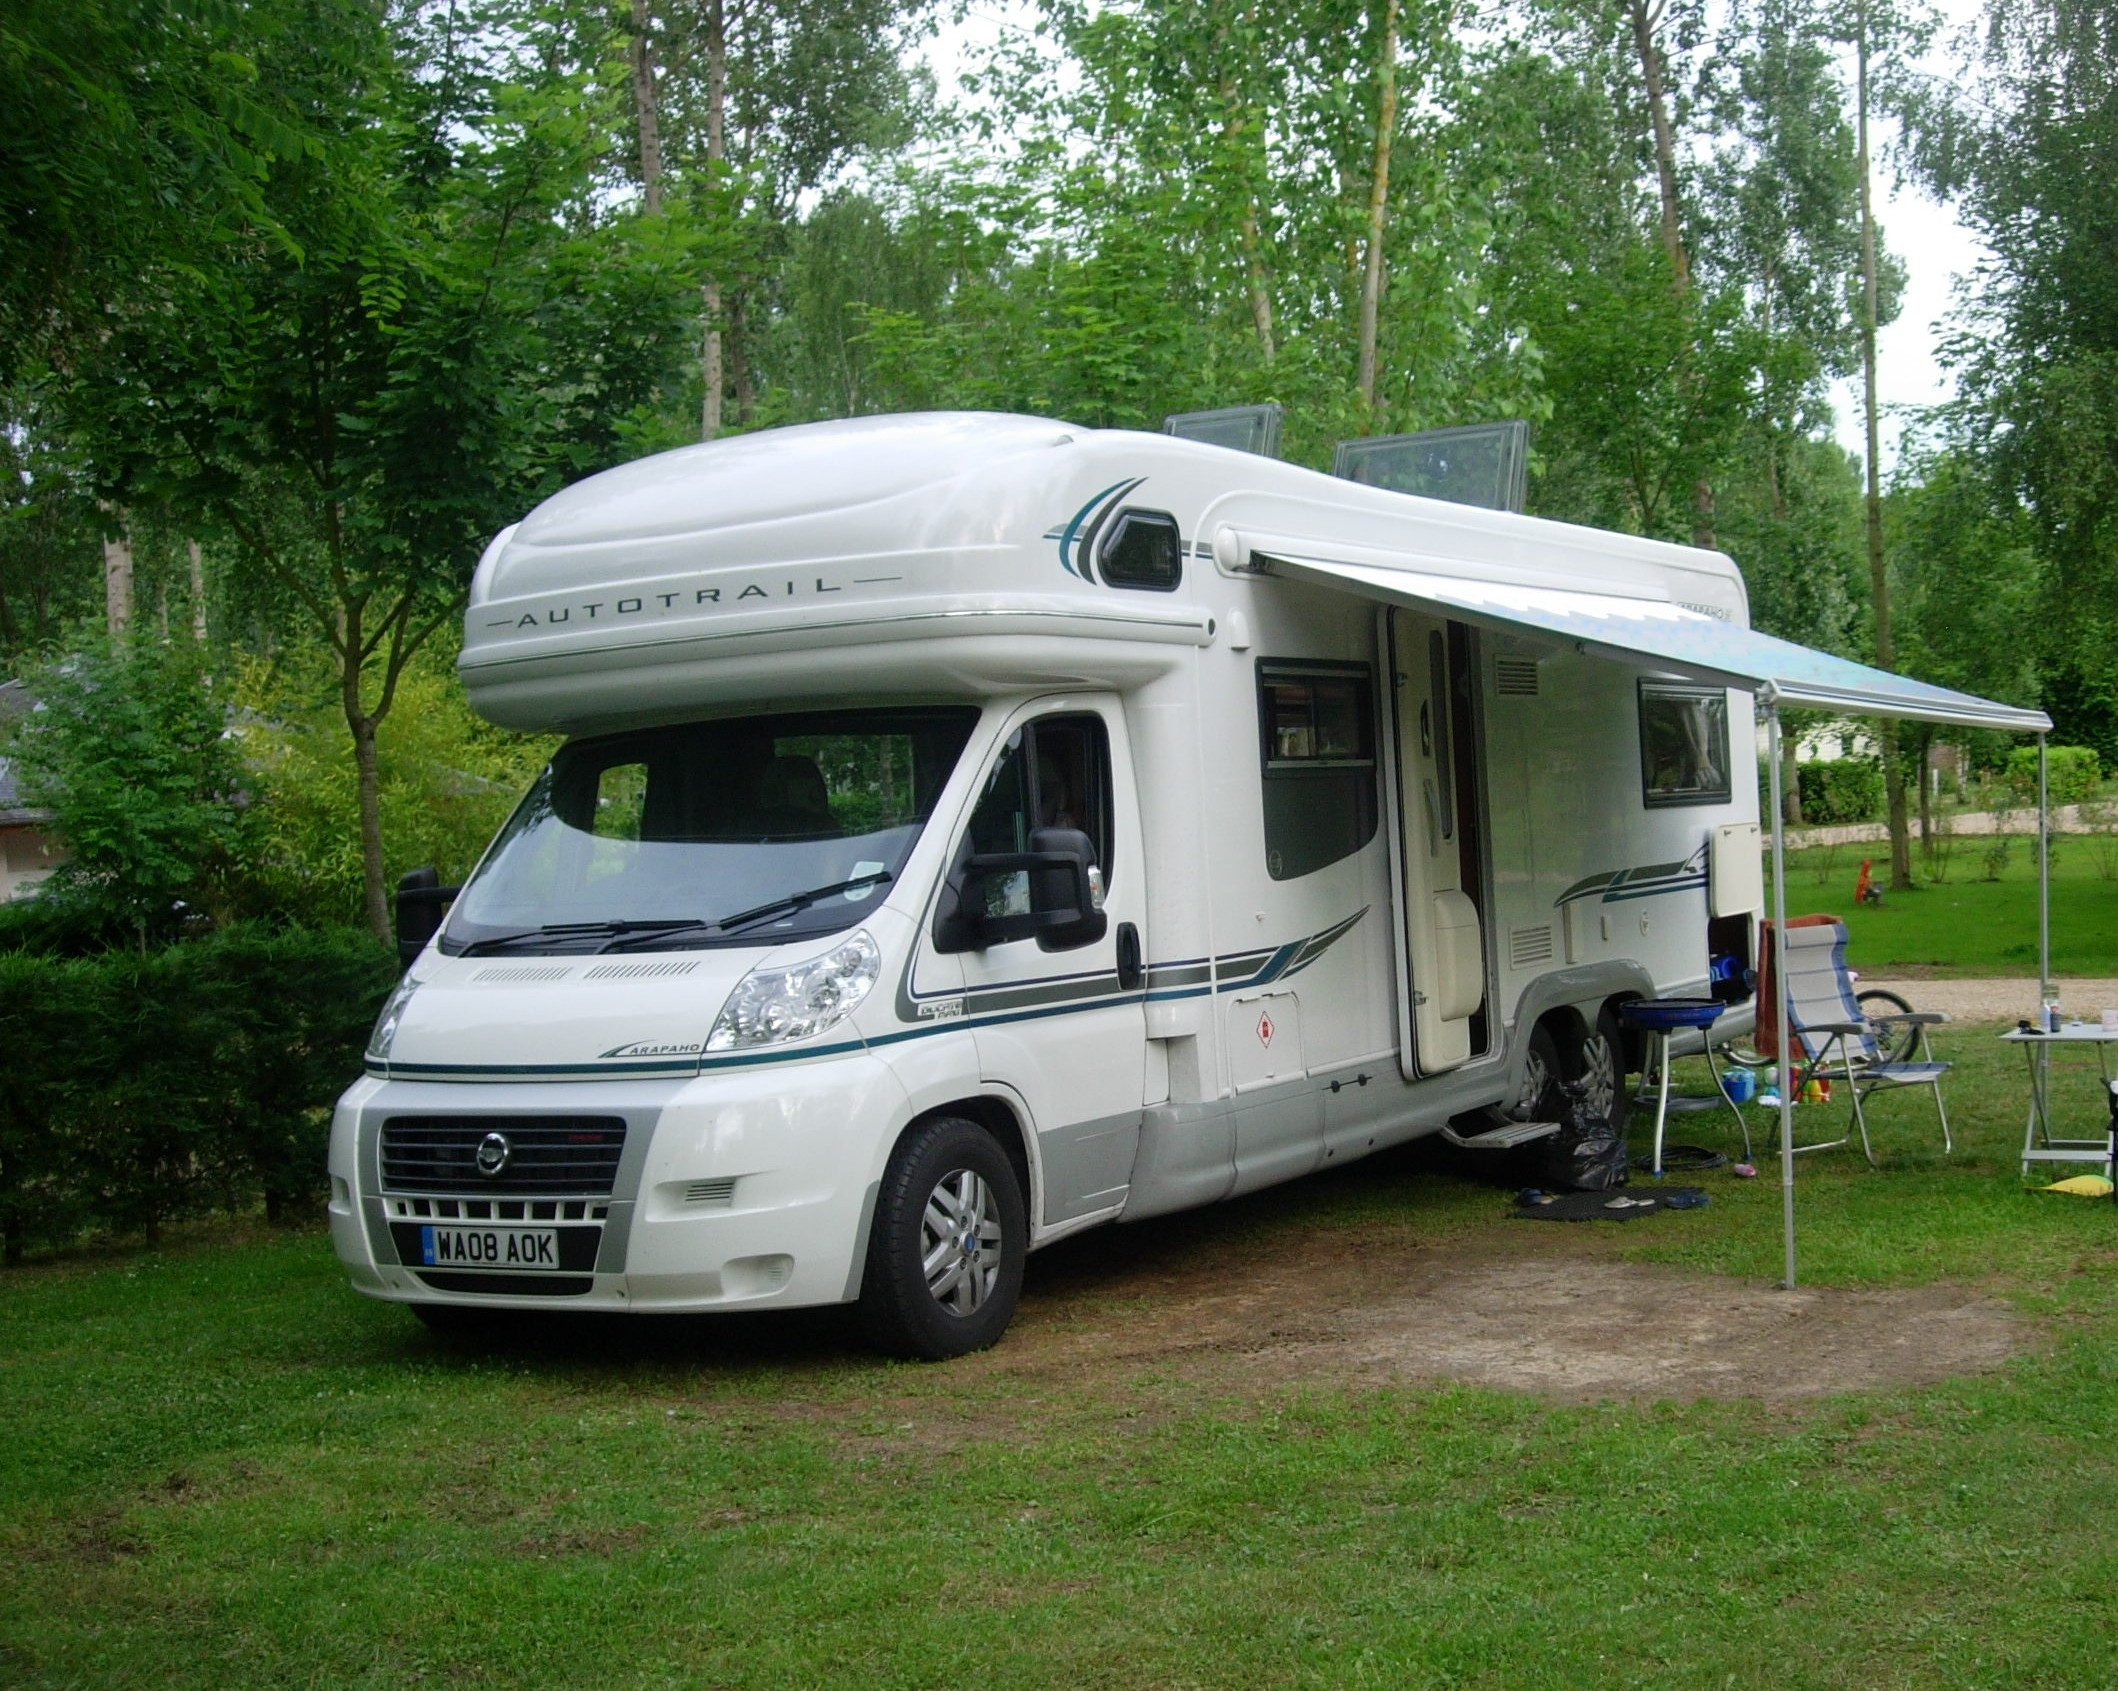 Campsites are all booked for you on your journey by us